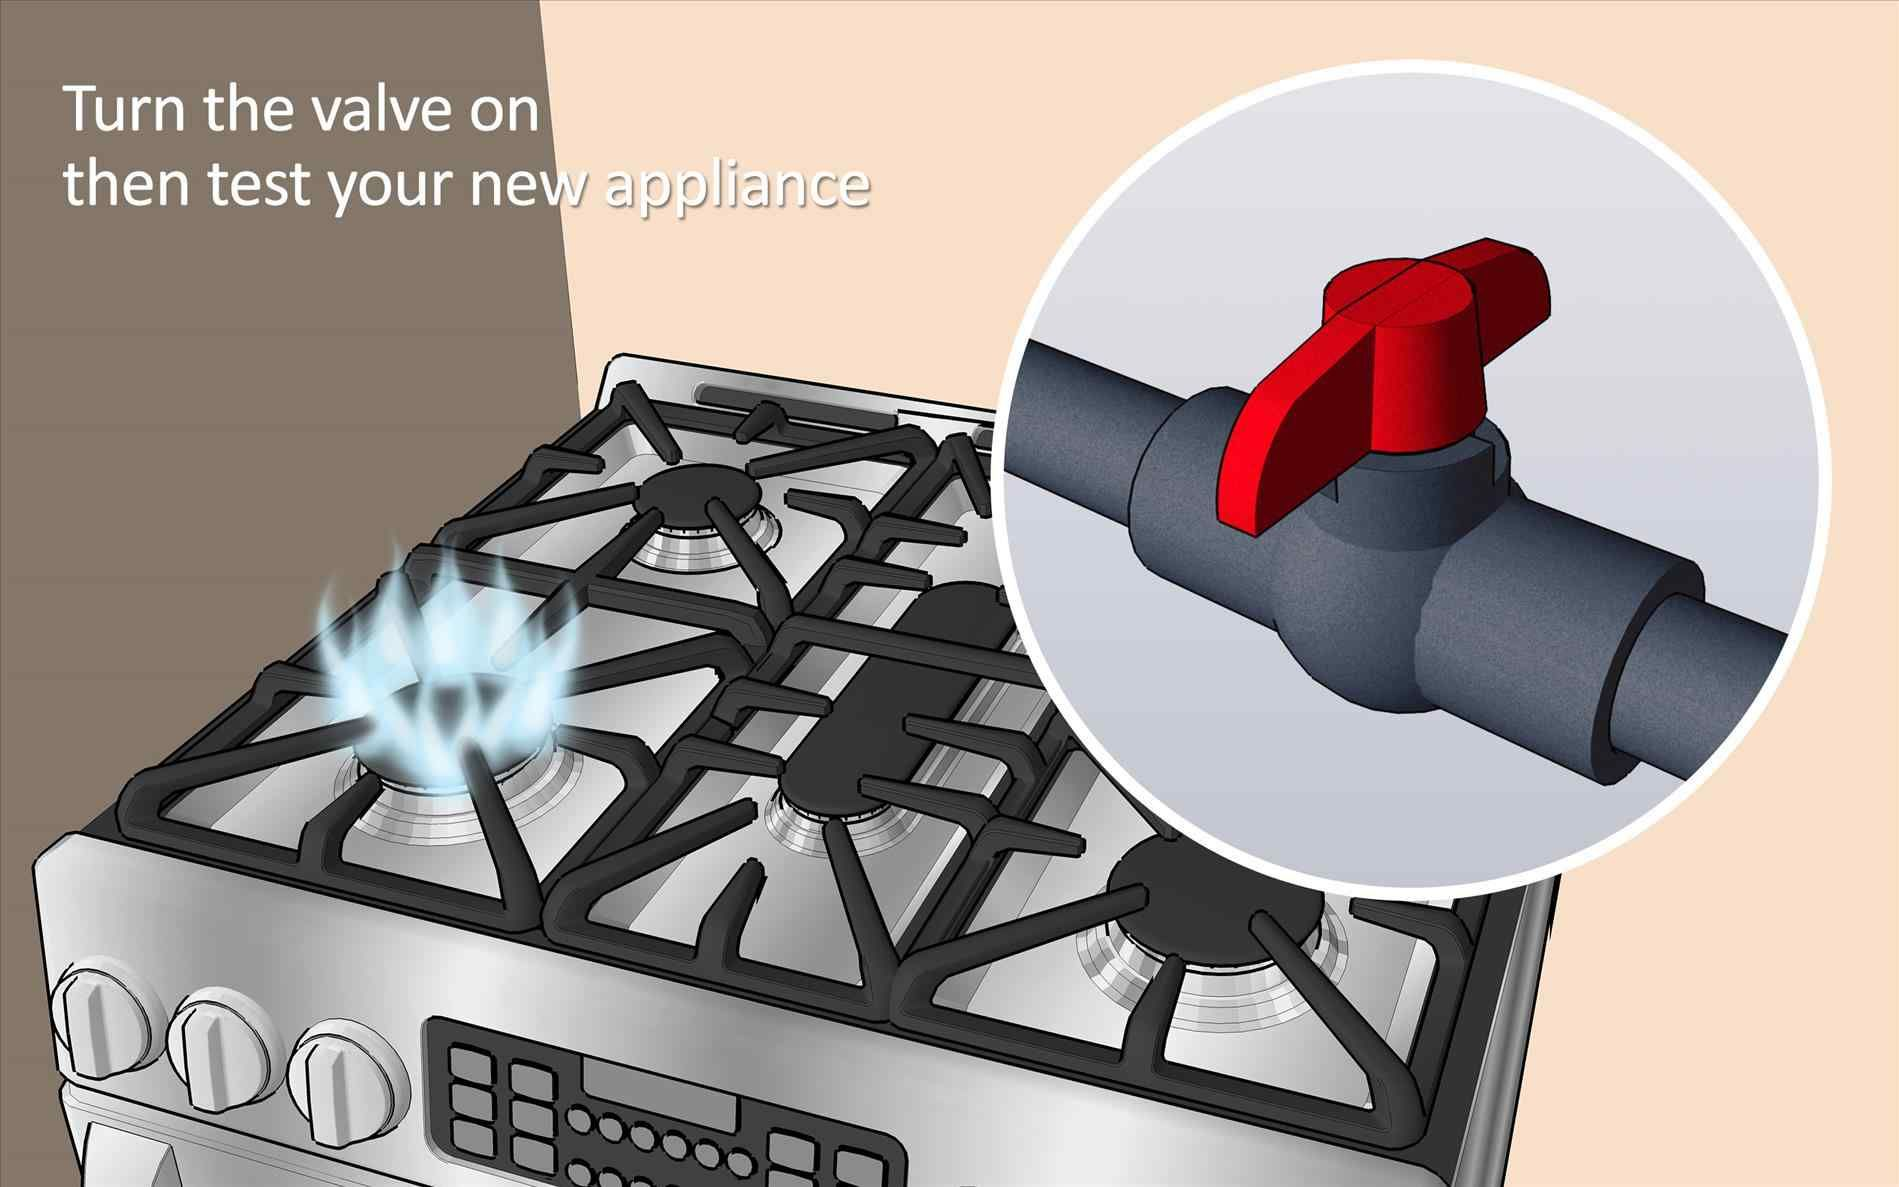 Fireplace Gas Valve Off Position - sit top mount 4-way ...